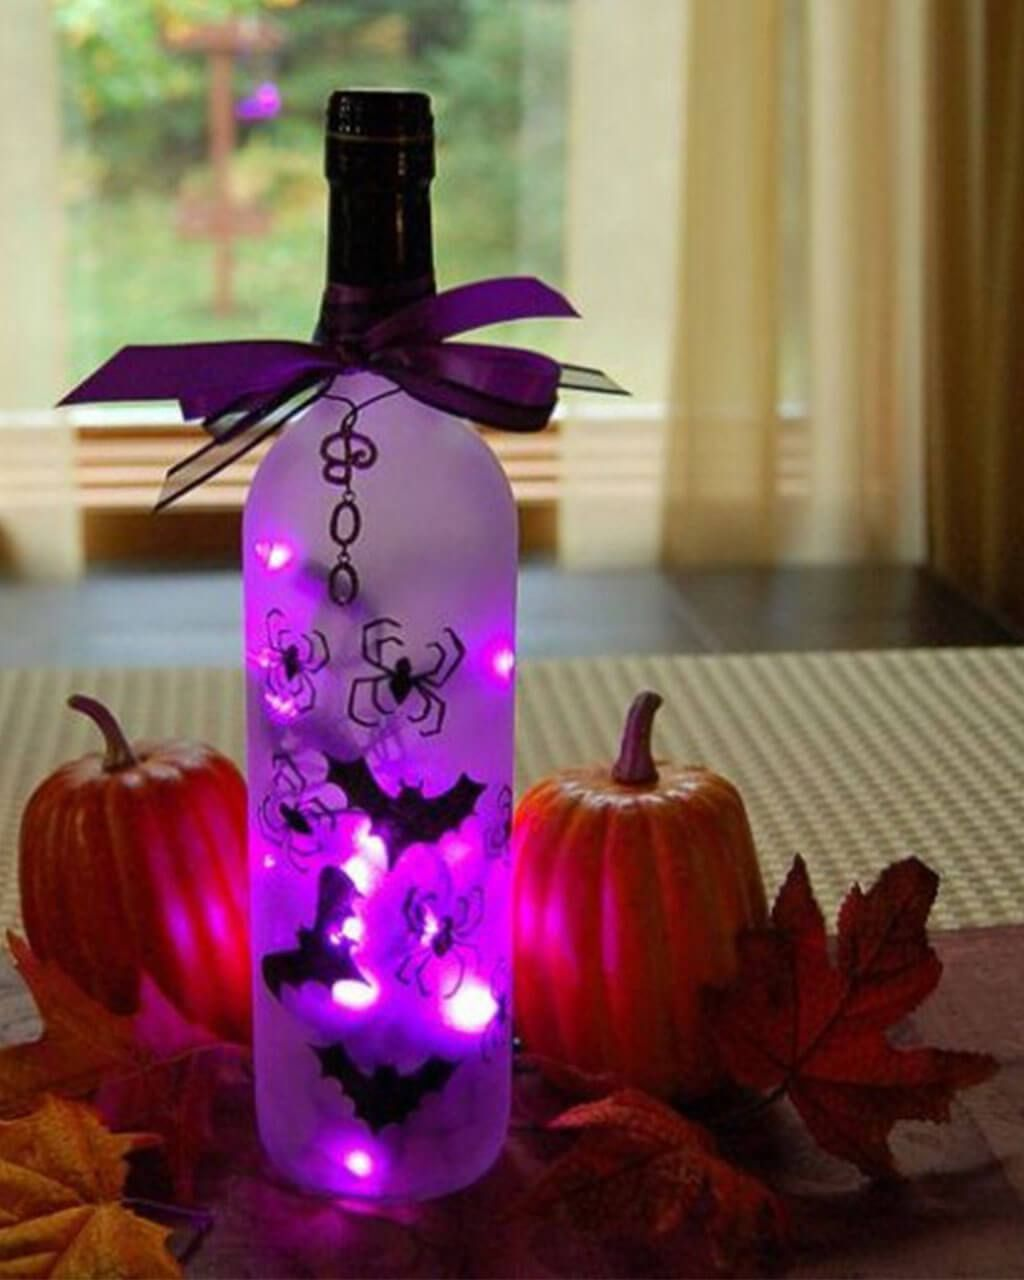 Wine bottle turns into eerie light diy indoor halloween decorating ideas also spooky decoration for rh za pinterest